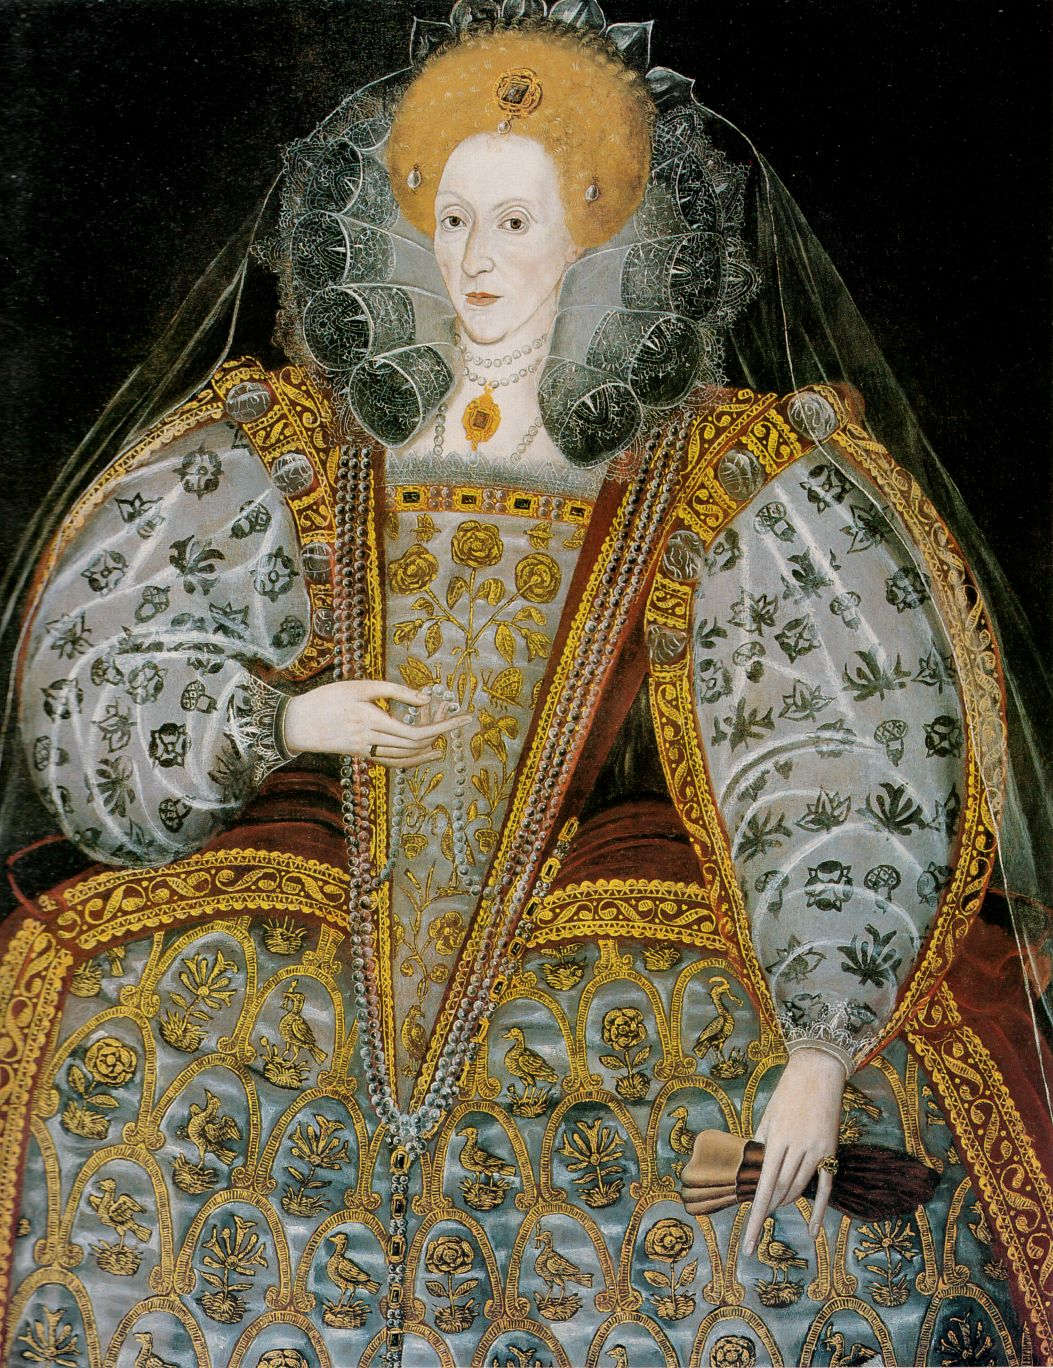 elizabeth i Elizabeth grew up in the school of adversity and early on had to endure 'the slings and arrows of outrageous fortune' the experiences of her appalling childhood were to breed in her much political.